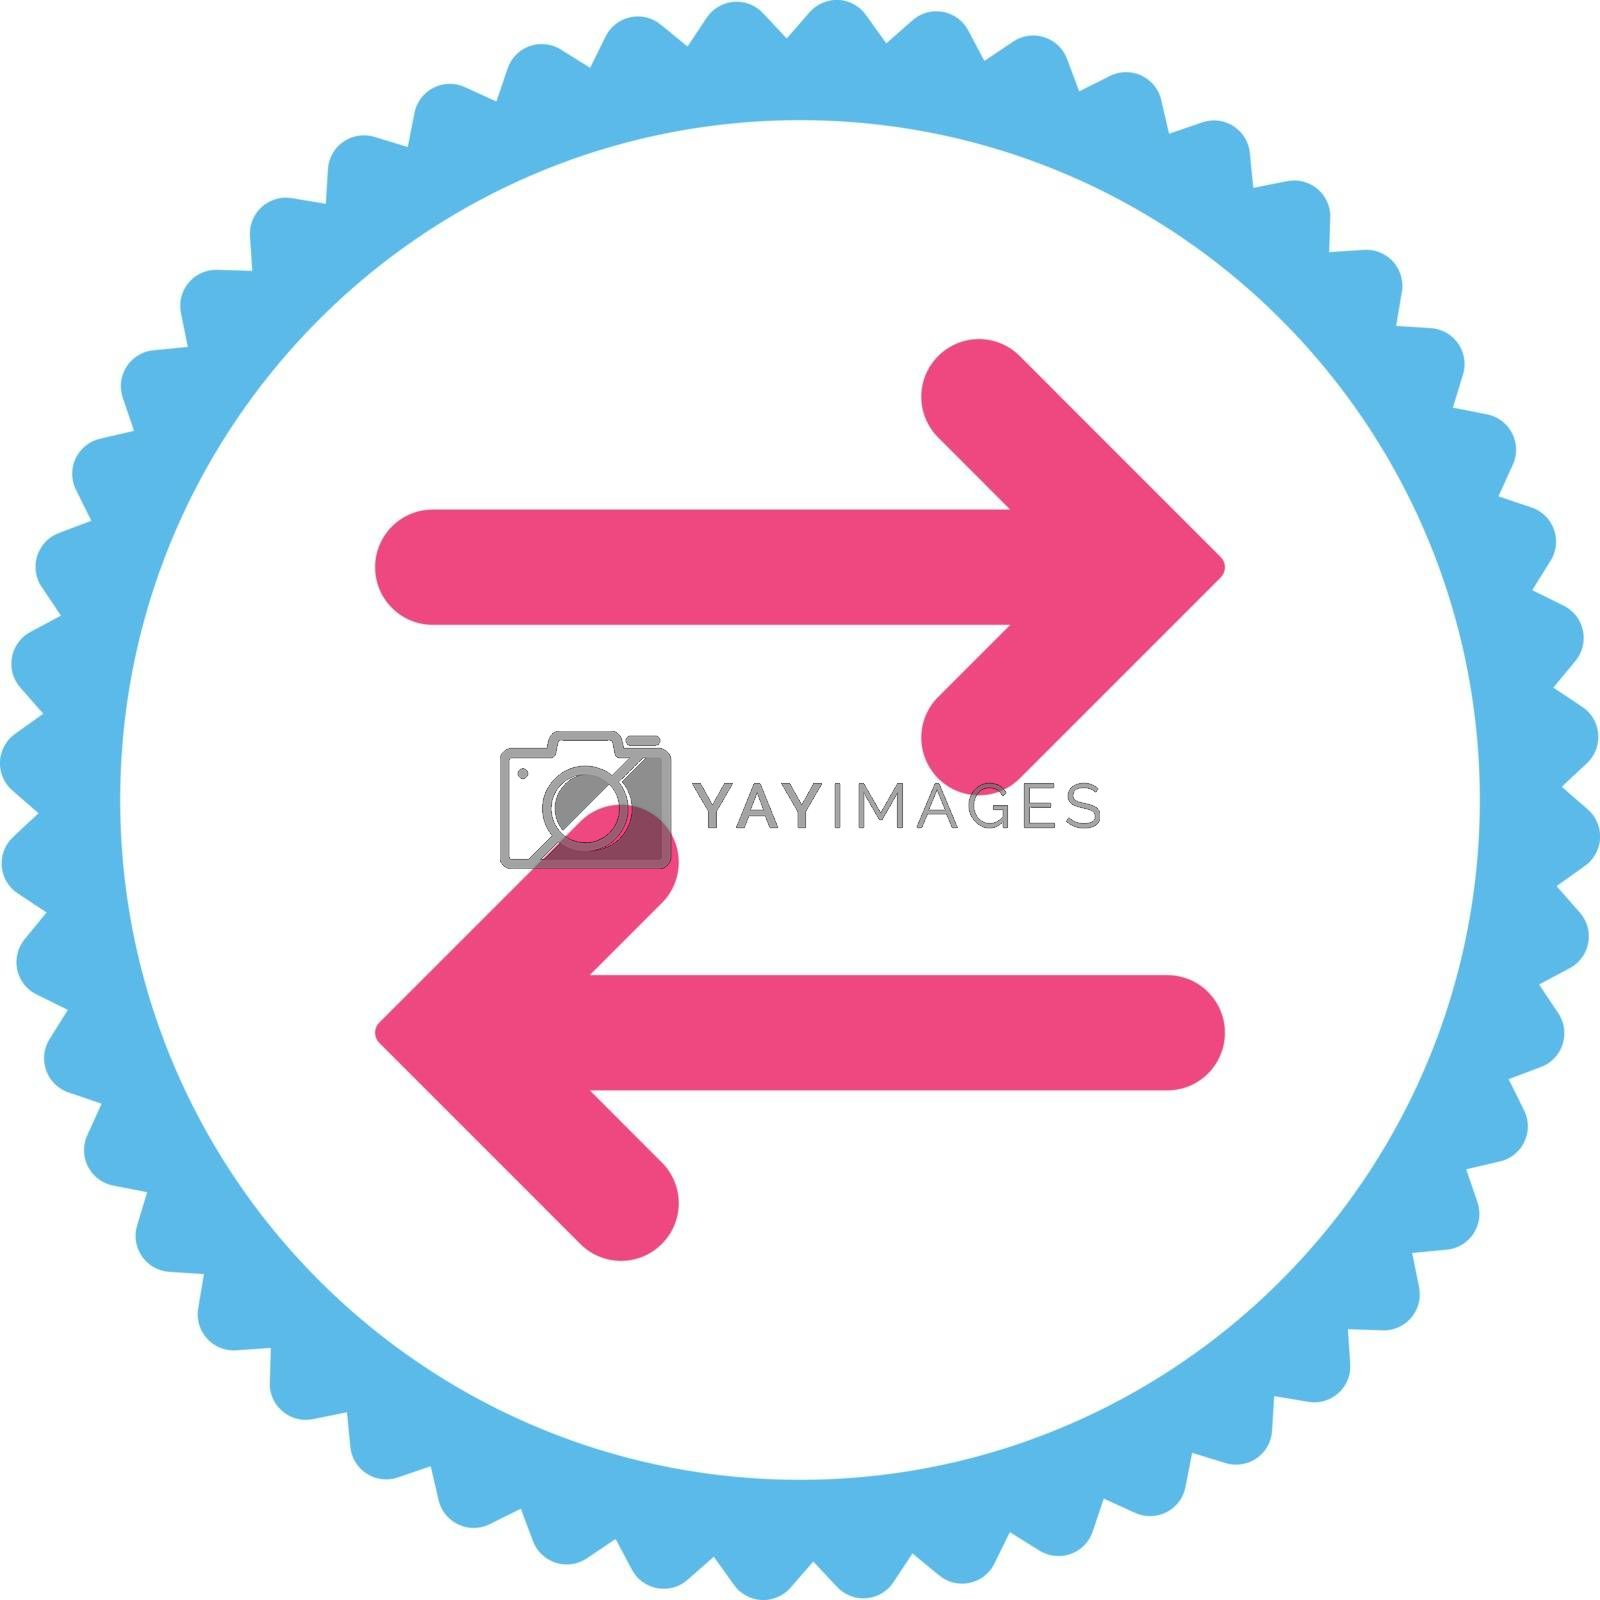 Flip Horizontal flat pink and blue colors round stamp icon by Aha-Soft